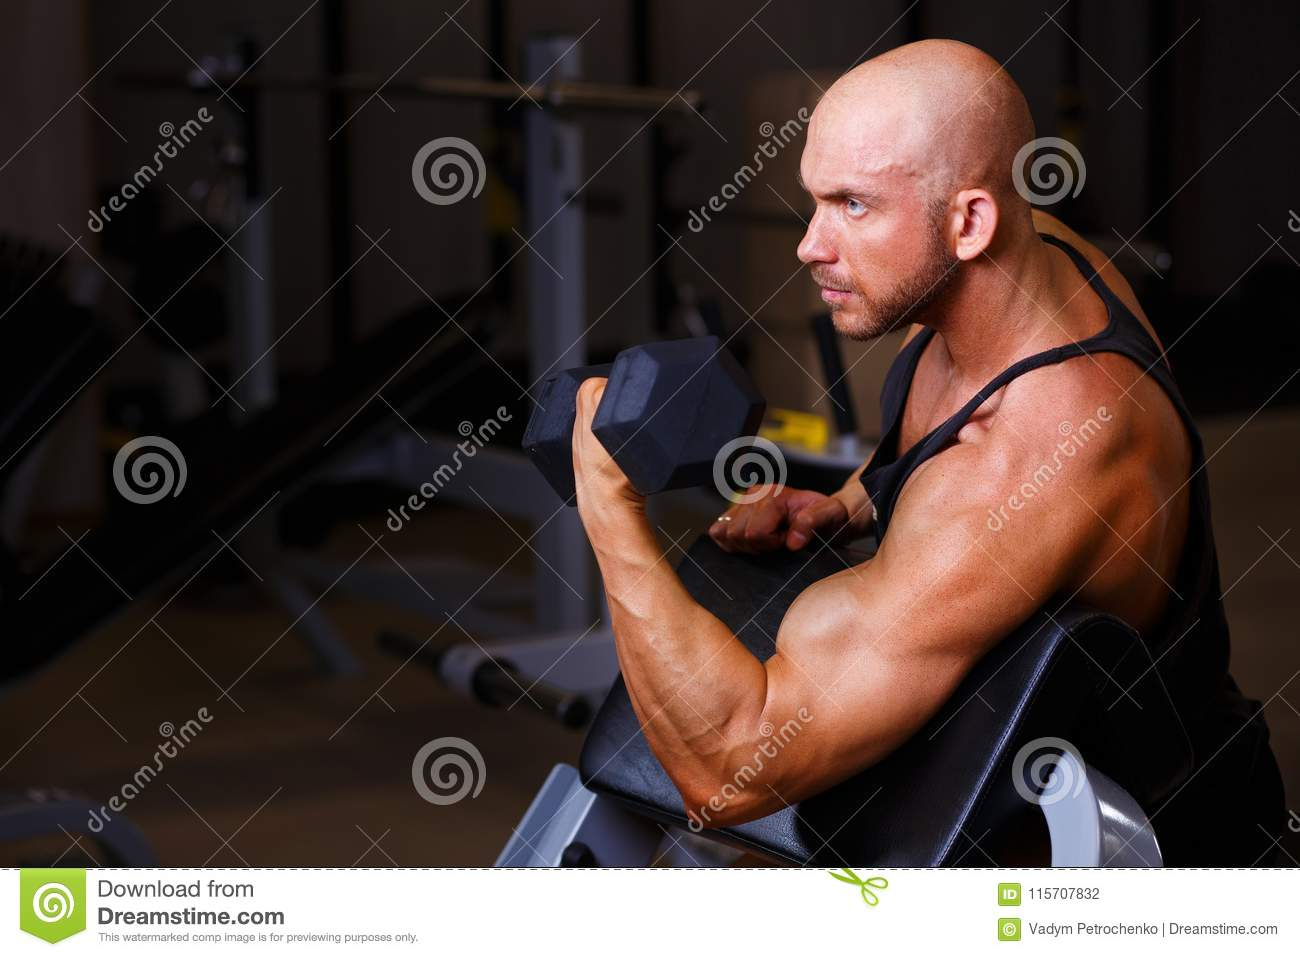 Strong ripped bald man pumping iron. Sports man working out with